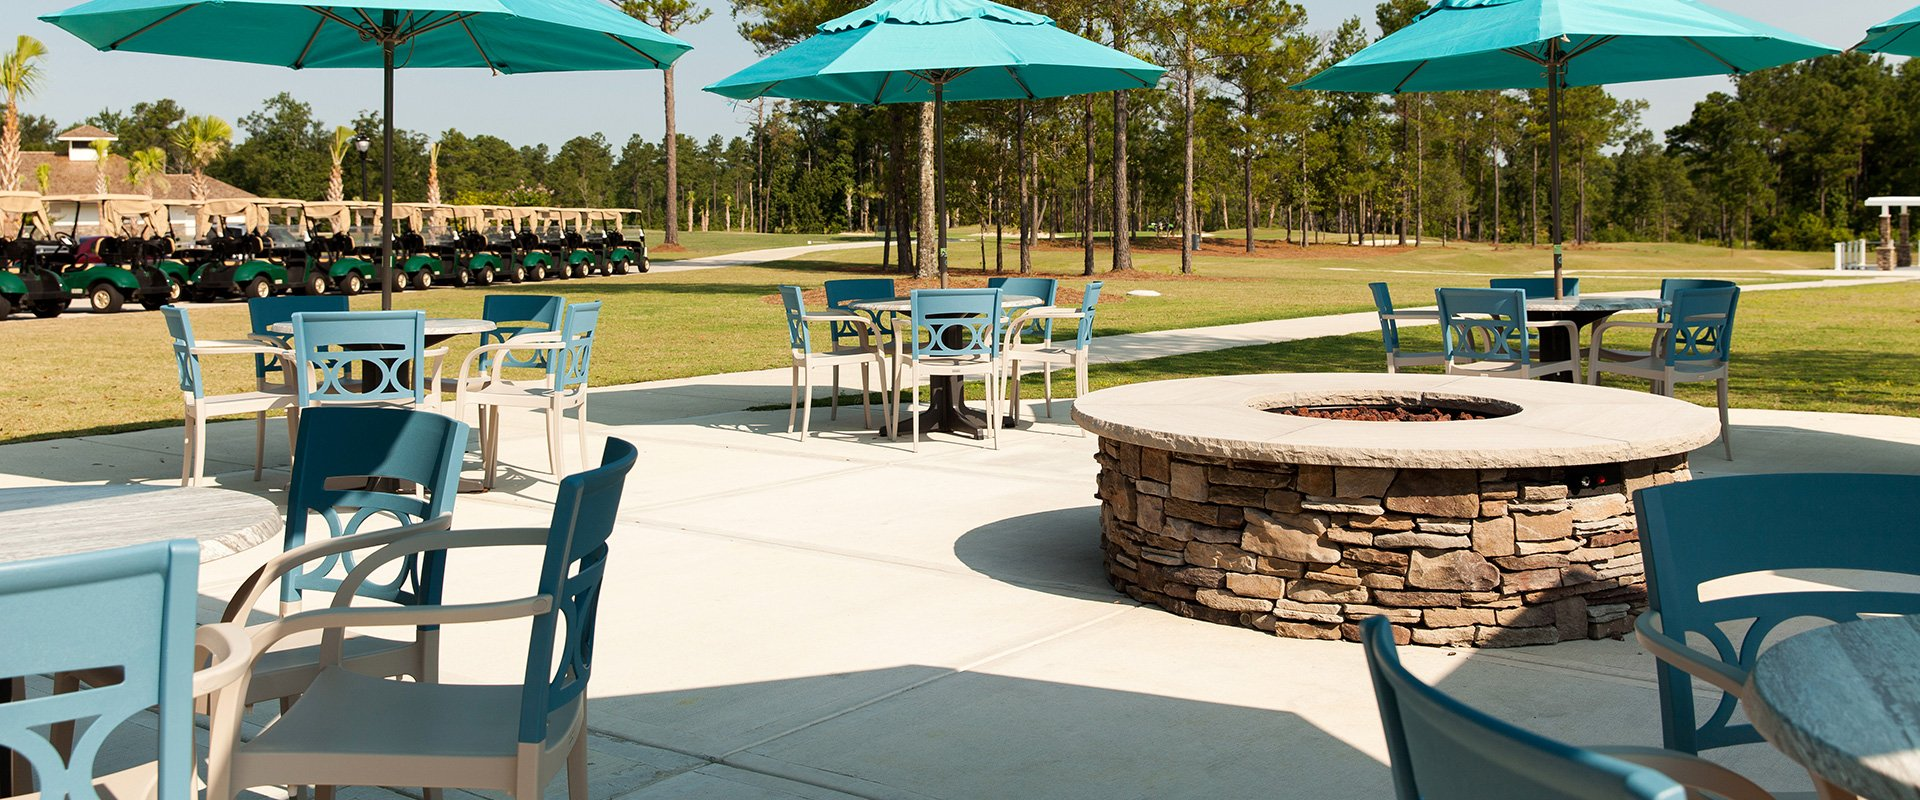 Compass Pointe Golf Pavilion